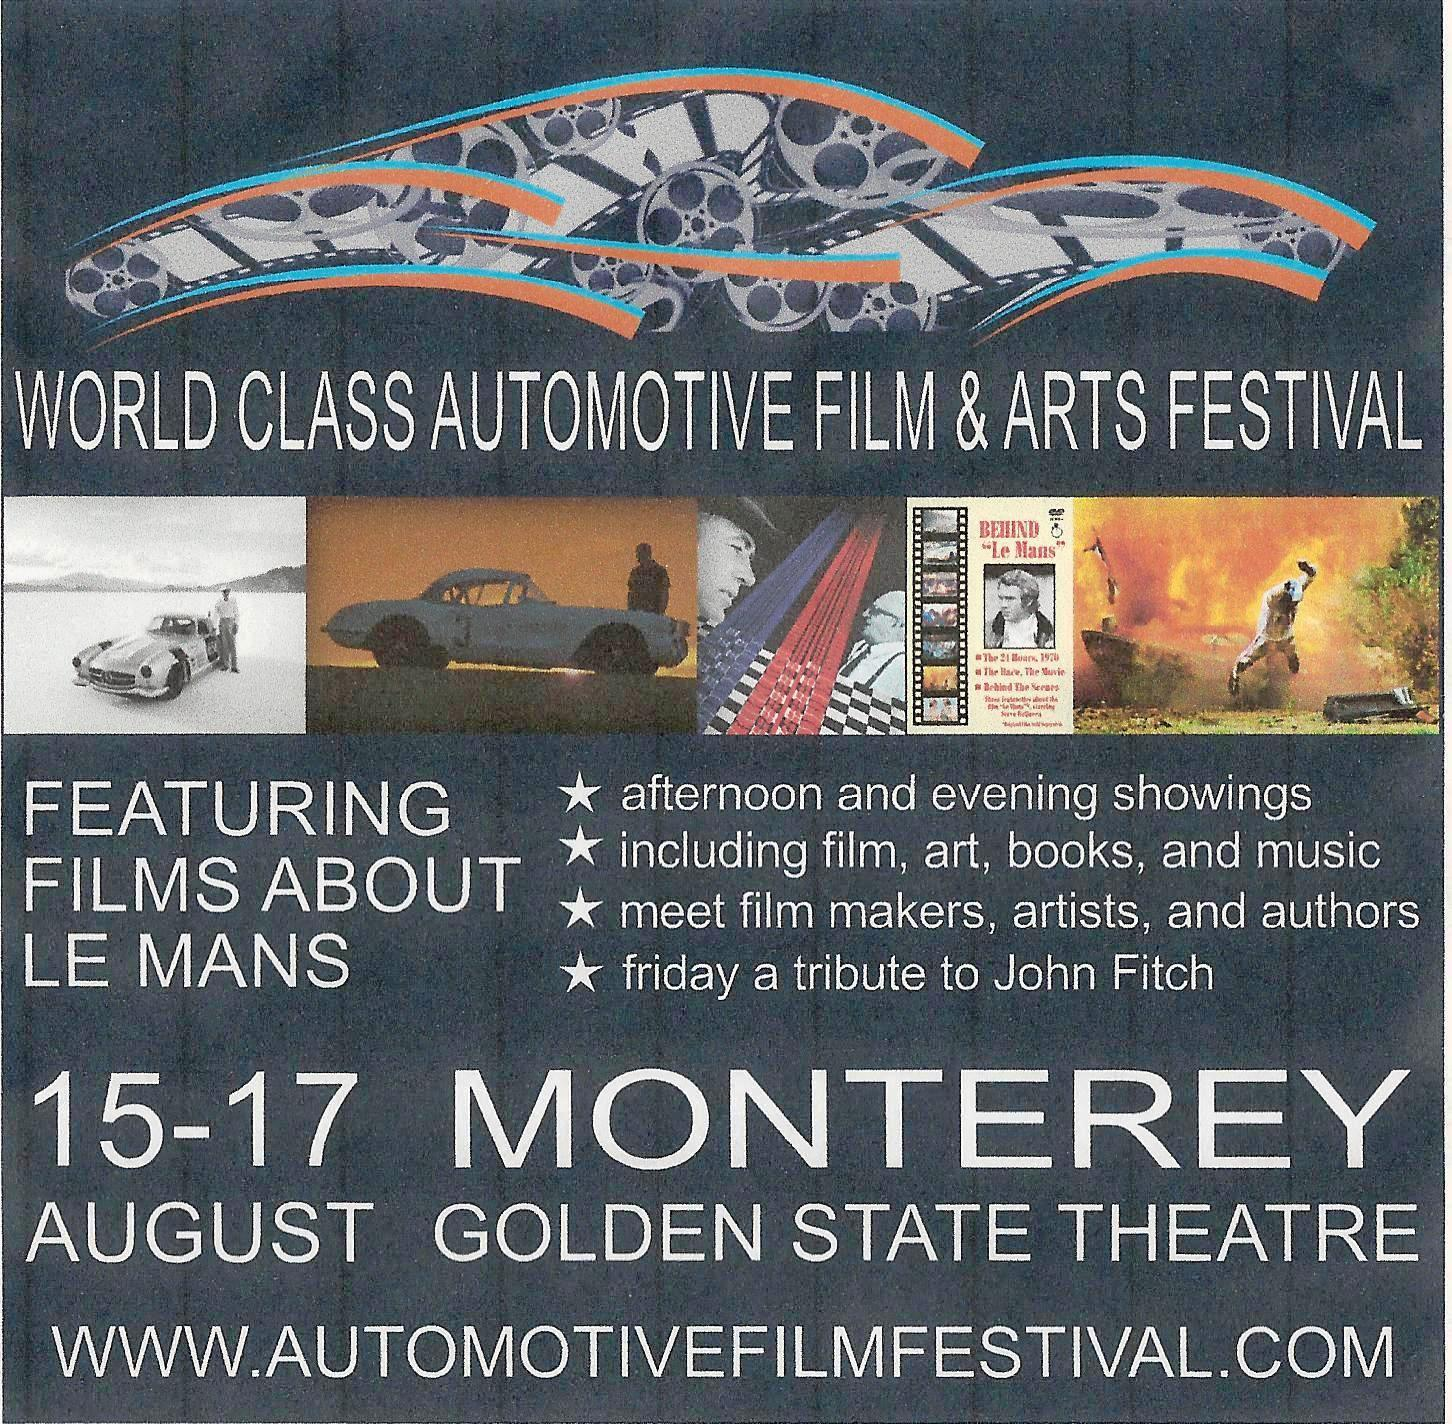 Looking for something different to do during Monterey Car Week in August